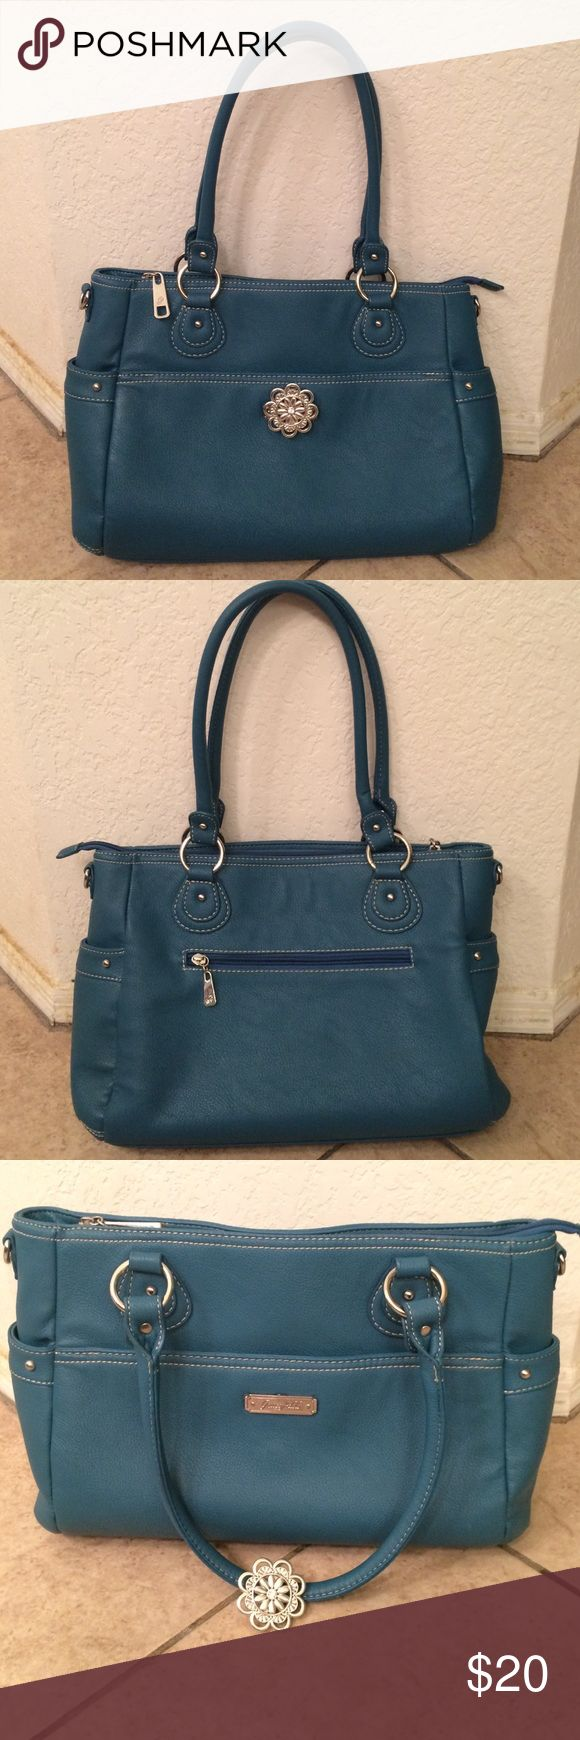 Grace Adele Handbag Cute barely used and in great condition Teal Grace Adele handbag. Comes with a detachable clip/brooch. Lots of storage compartments to keep everything organized! Grace Adele Bags